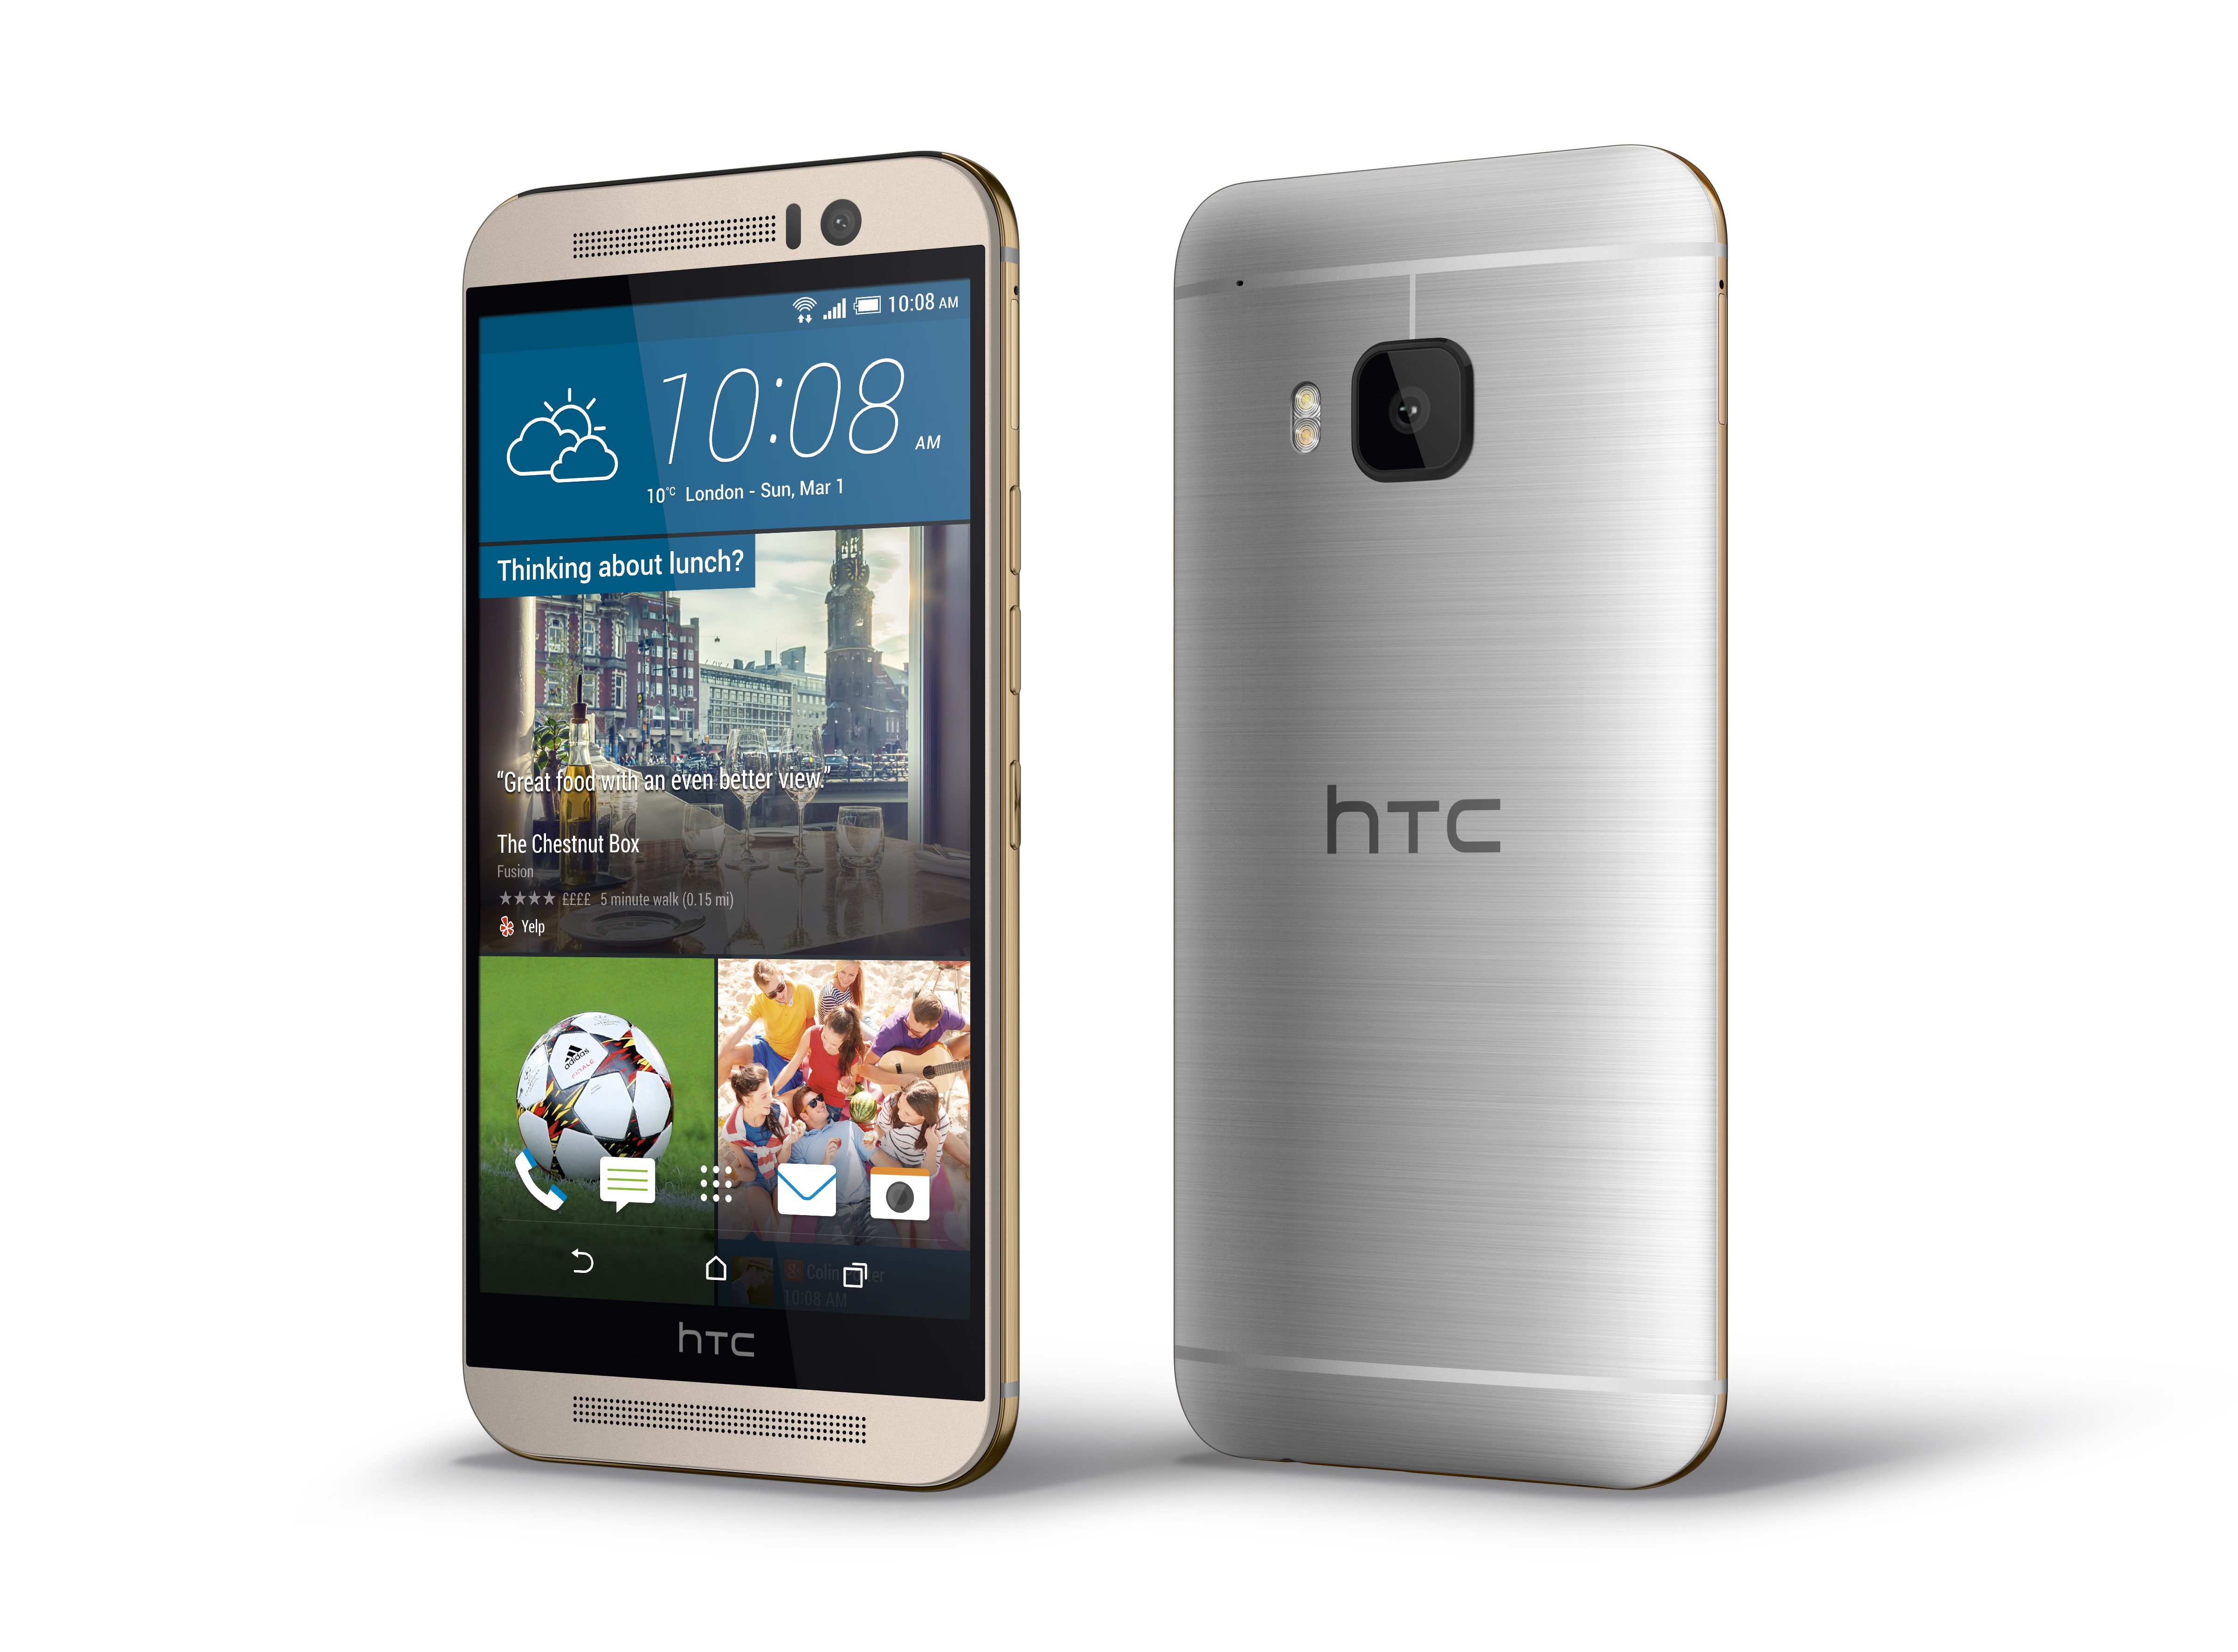 HTC one S9-a Better M9 Officially Announced